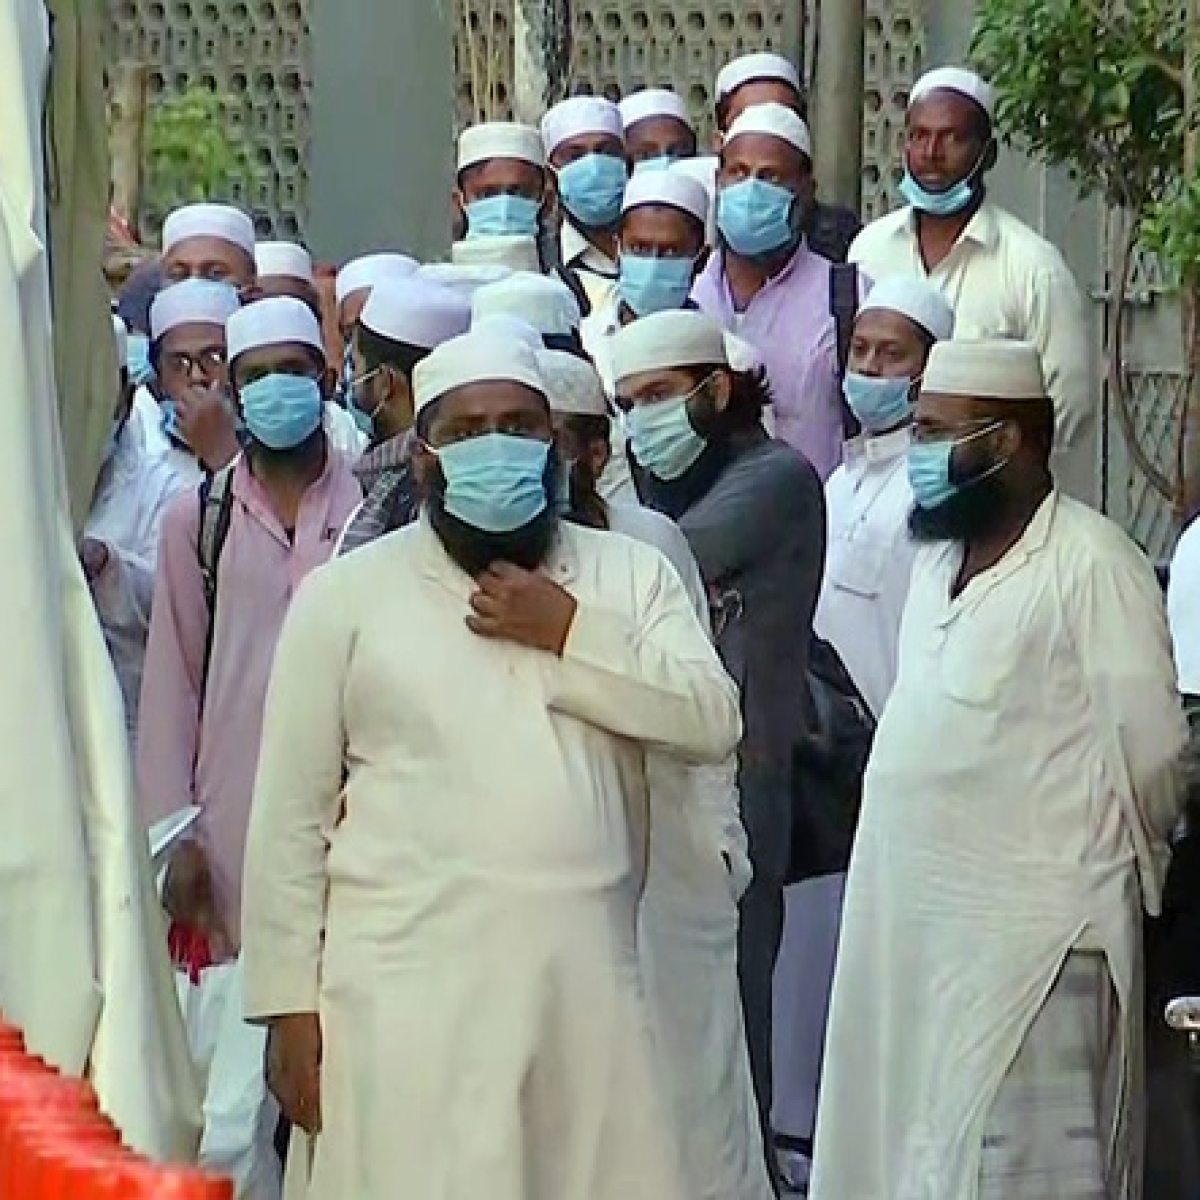 Coronavirus update: Tablighi Jamaat chief, others booked for culpable homicide